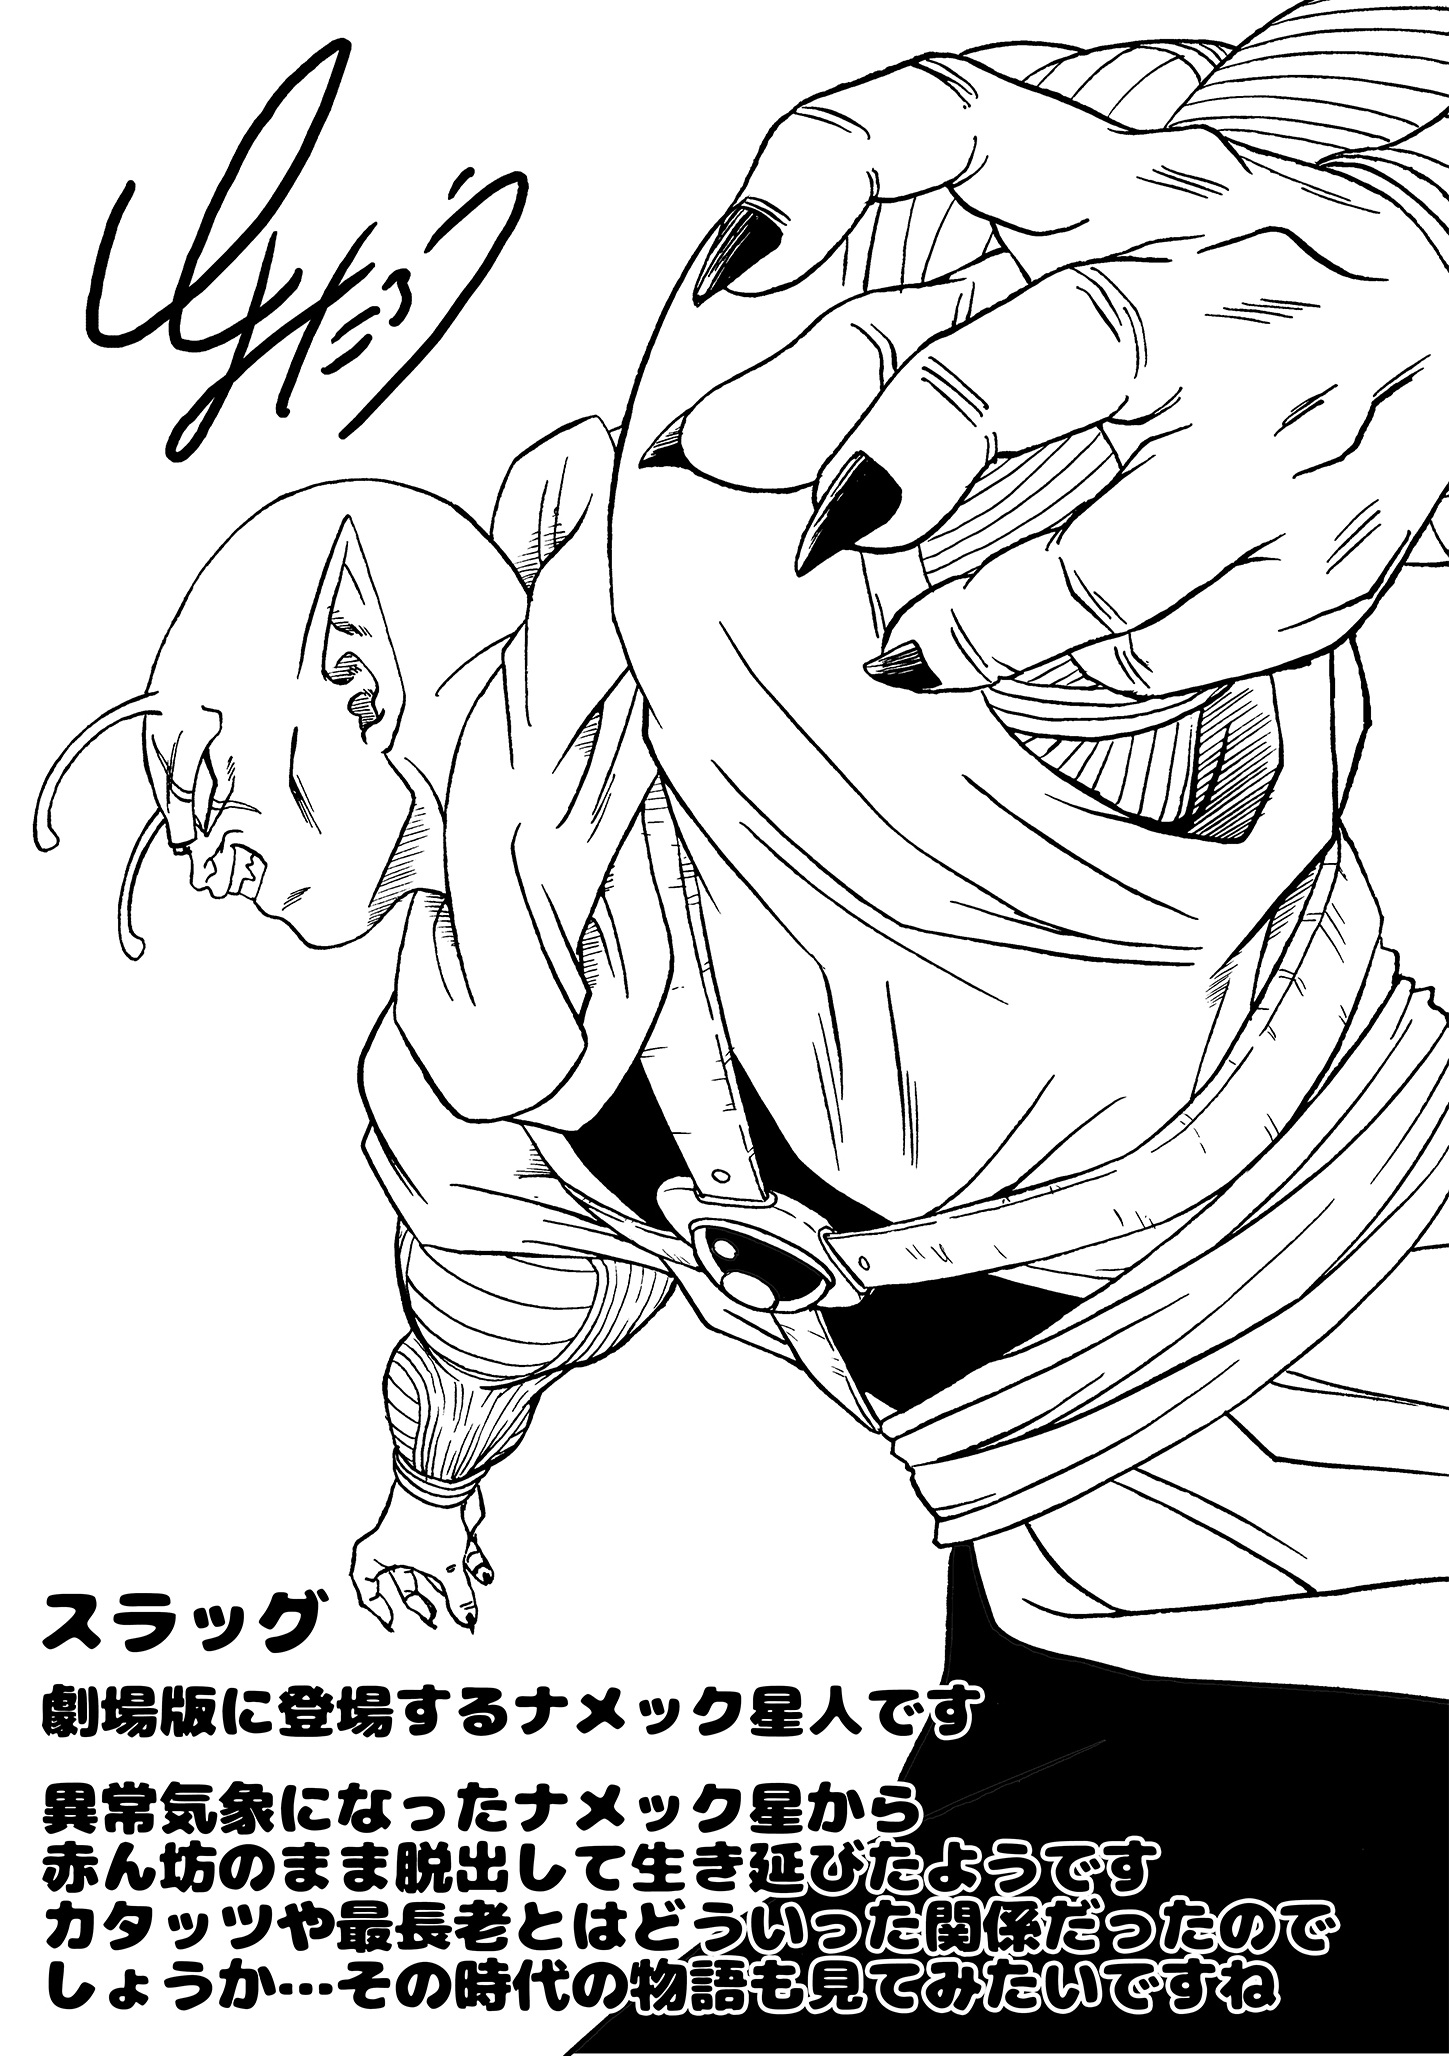 L'artwork de Toyotaro de septembre 2019 pour le site officiel de Dragon Ball – Slug